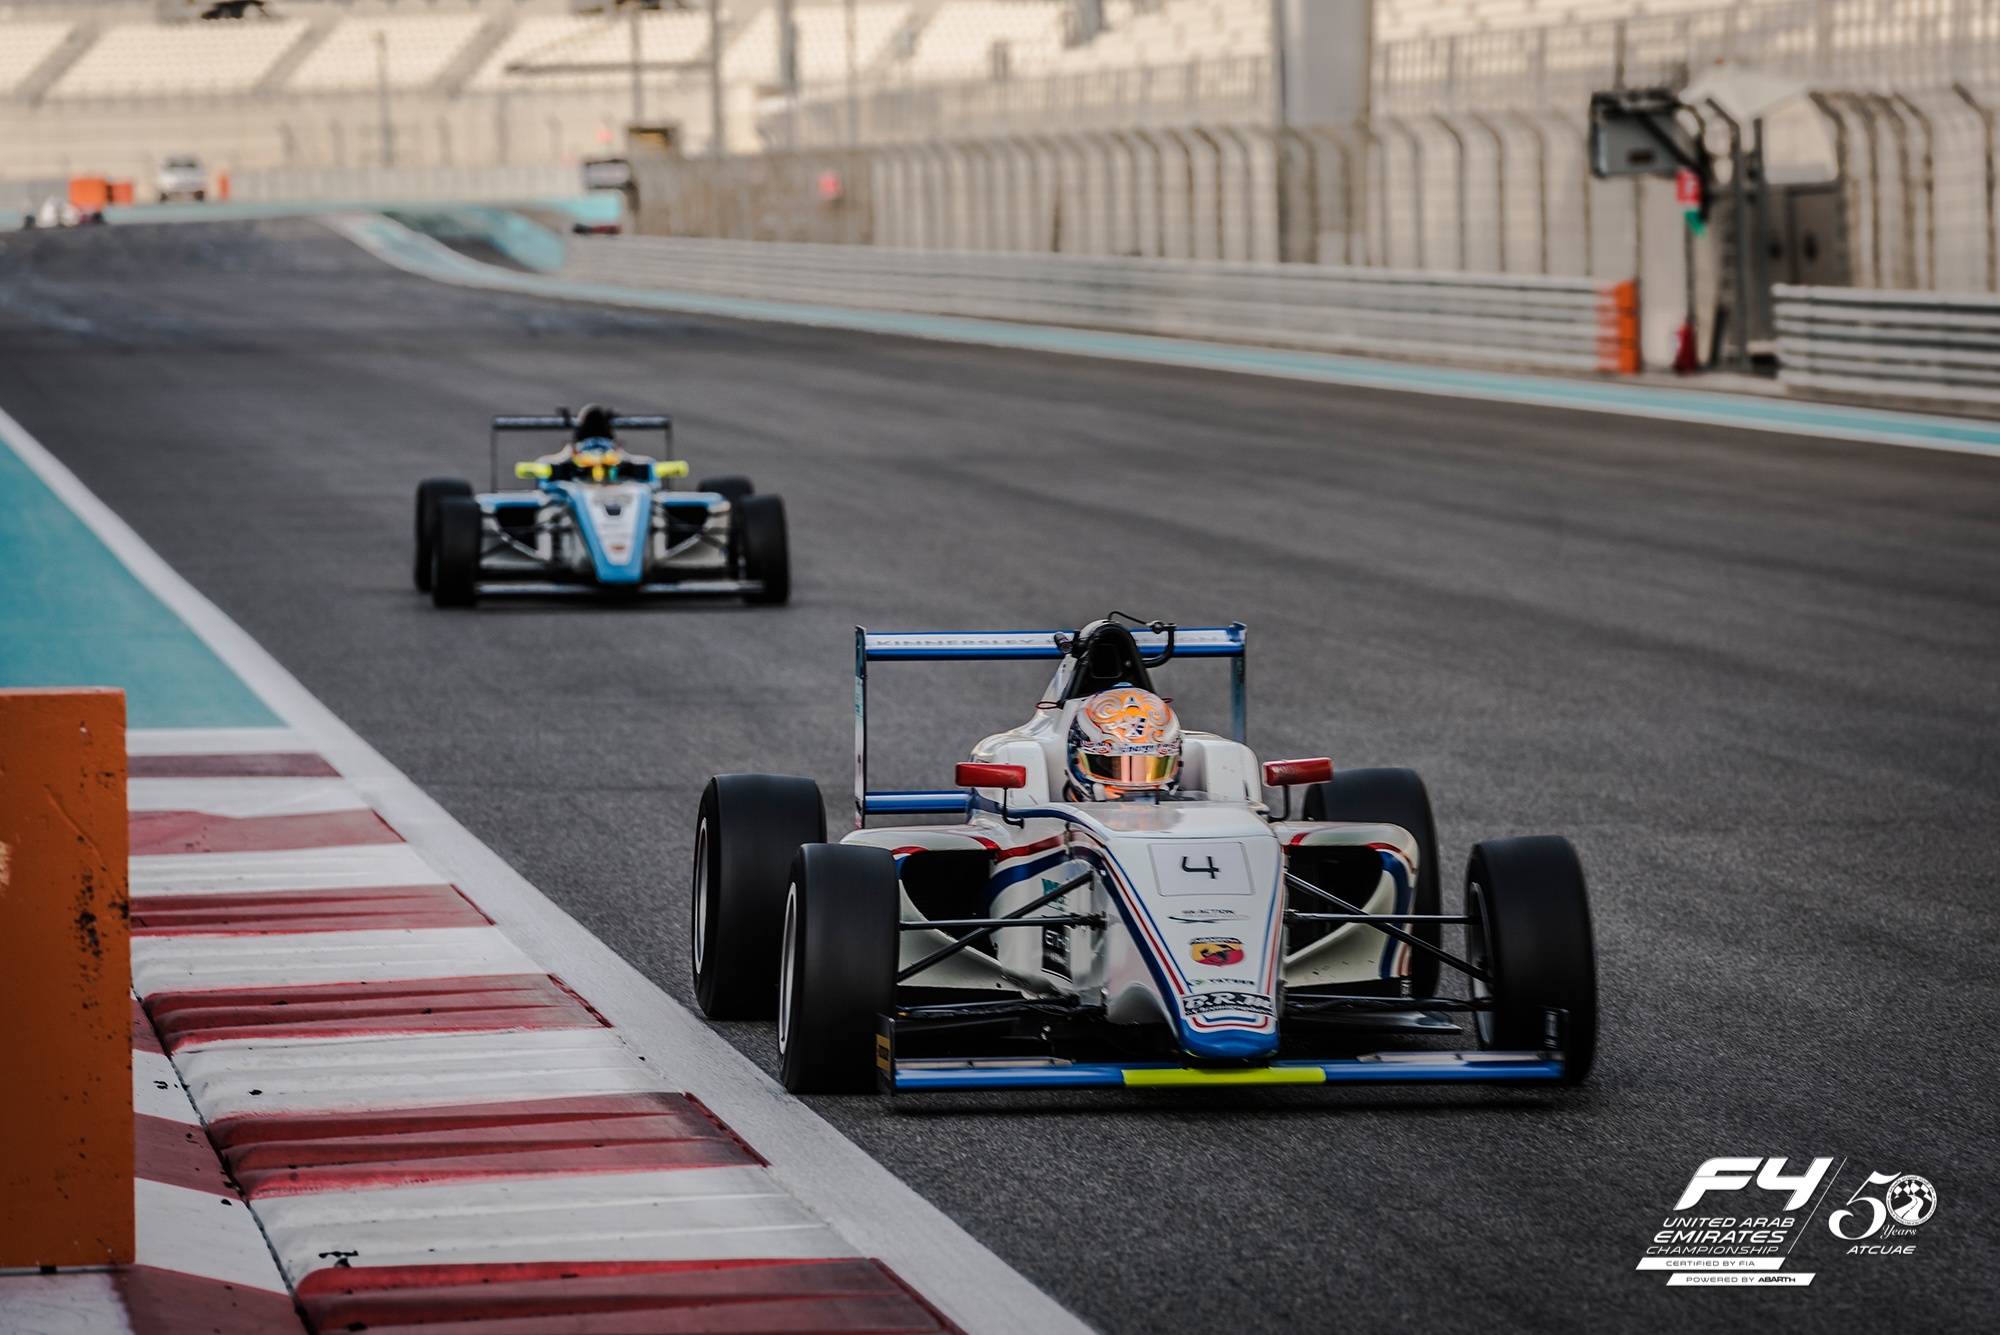 2016 12 16   F4 Second Round   Abu Dhabi 12